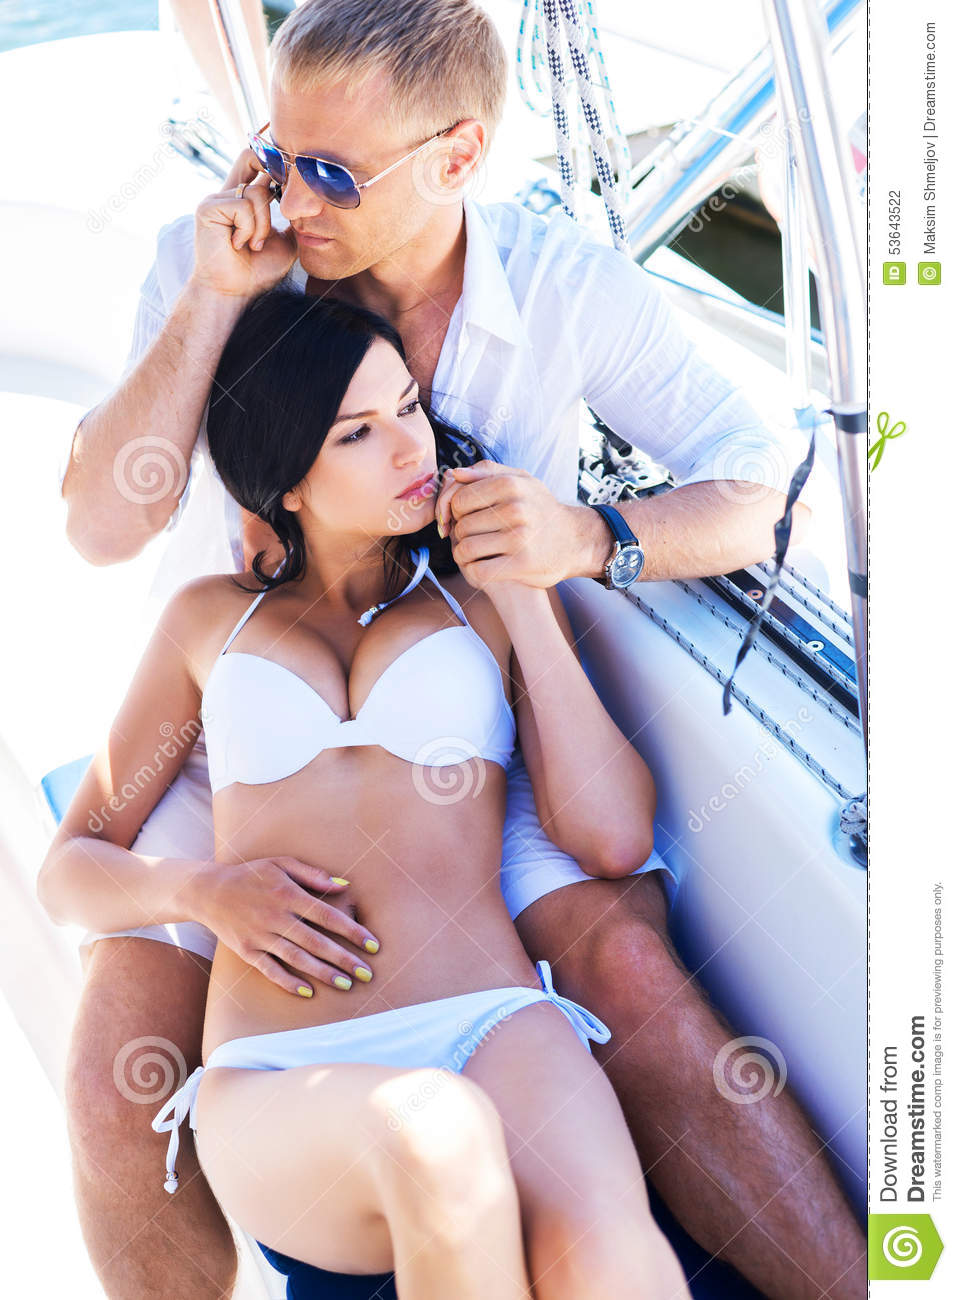 Young Couple Relacing On A Boat Stock Photo - Image of holiday, luxury: 53643522